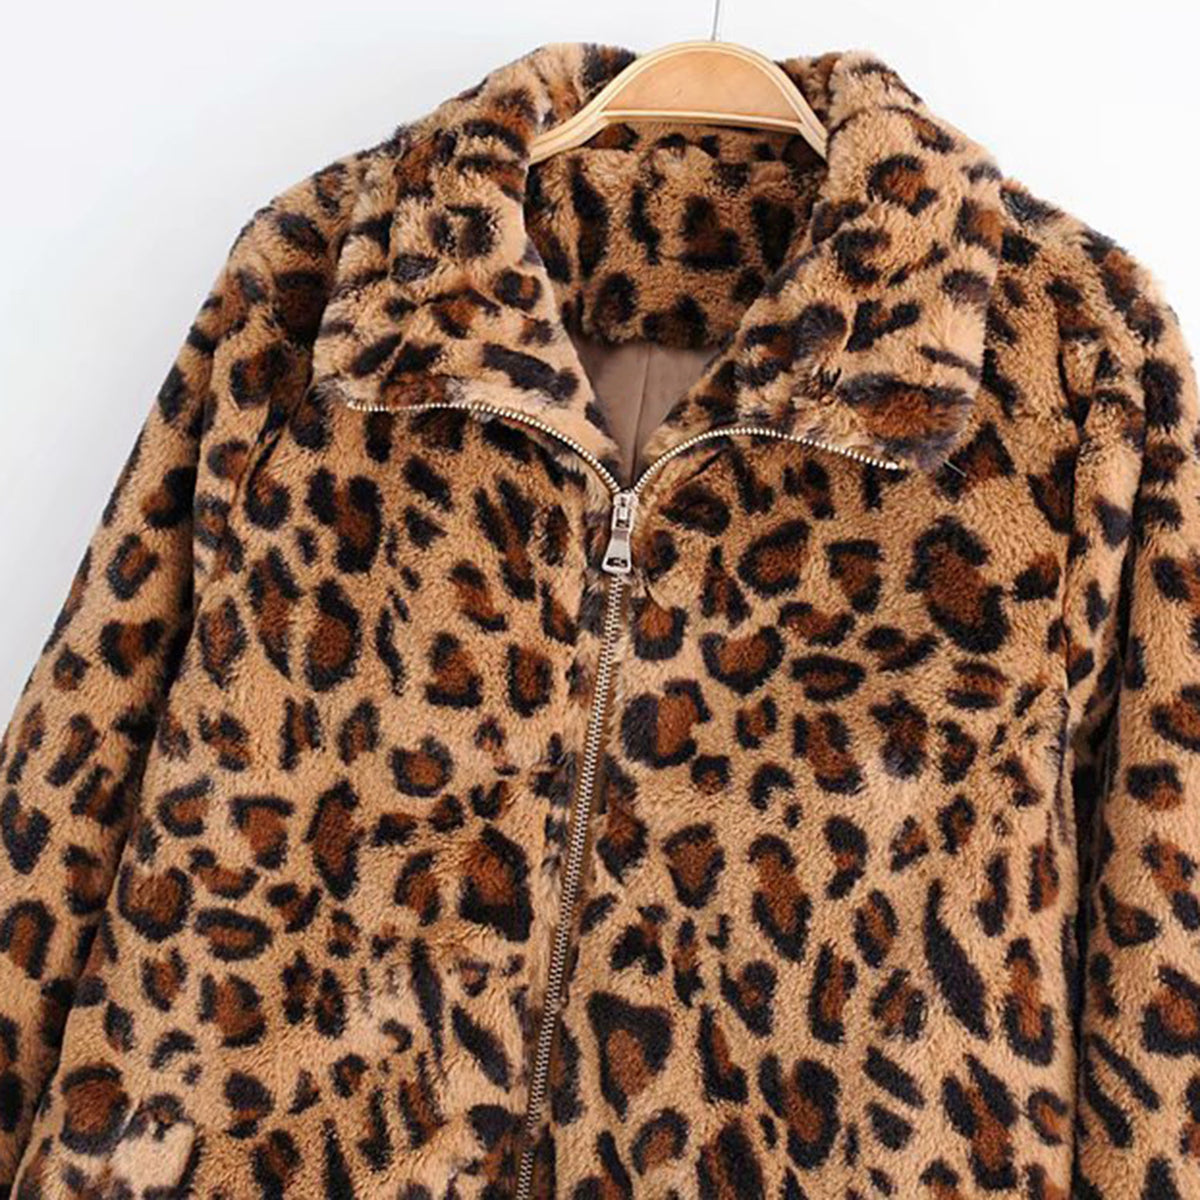 Leopard Teddy Sweater Faux Fur Jacket - worthtryit.com